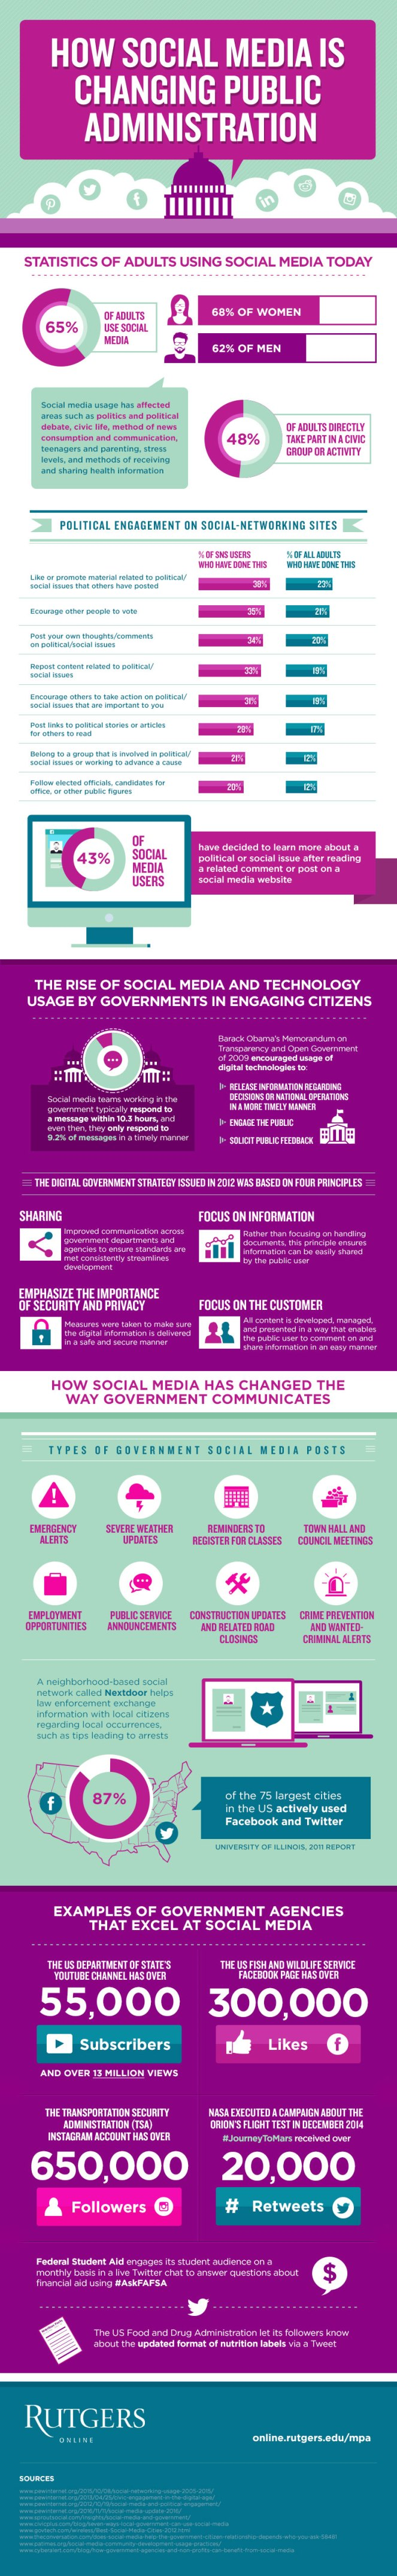 How Social Media Is Changing Public Administration [Infographic]